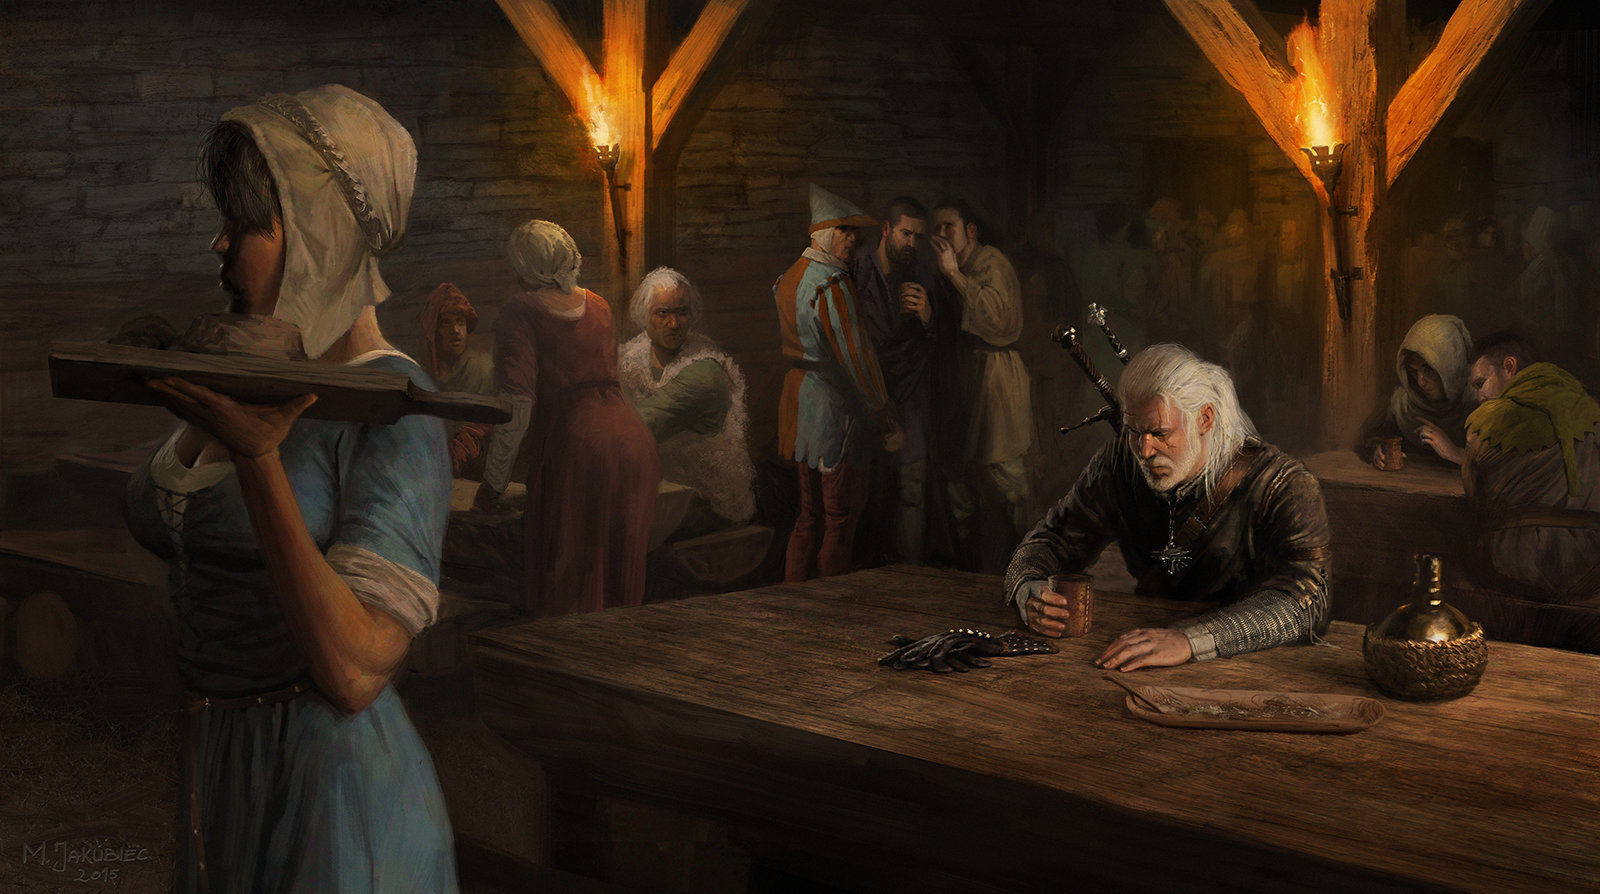 The Witcher 3 concept art picture remaster